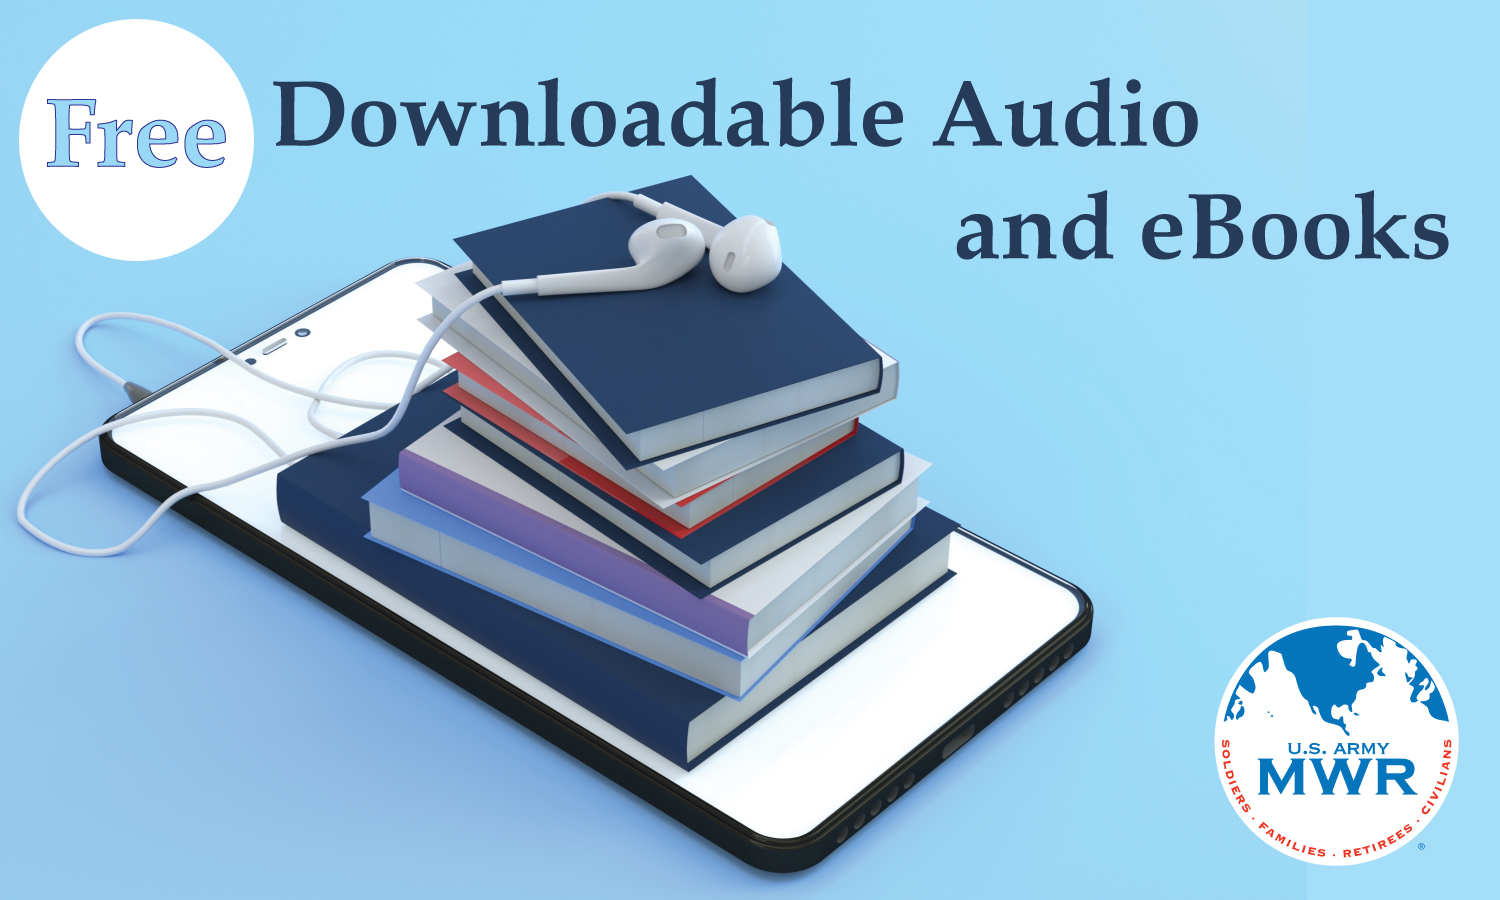 Free Downloadable Audio and eBooks